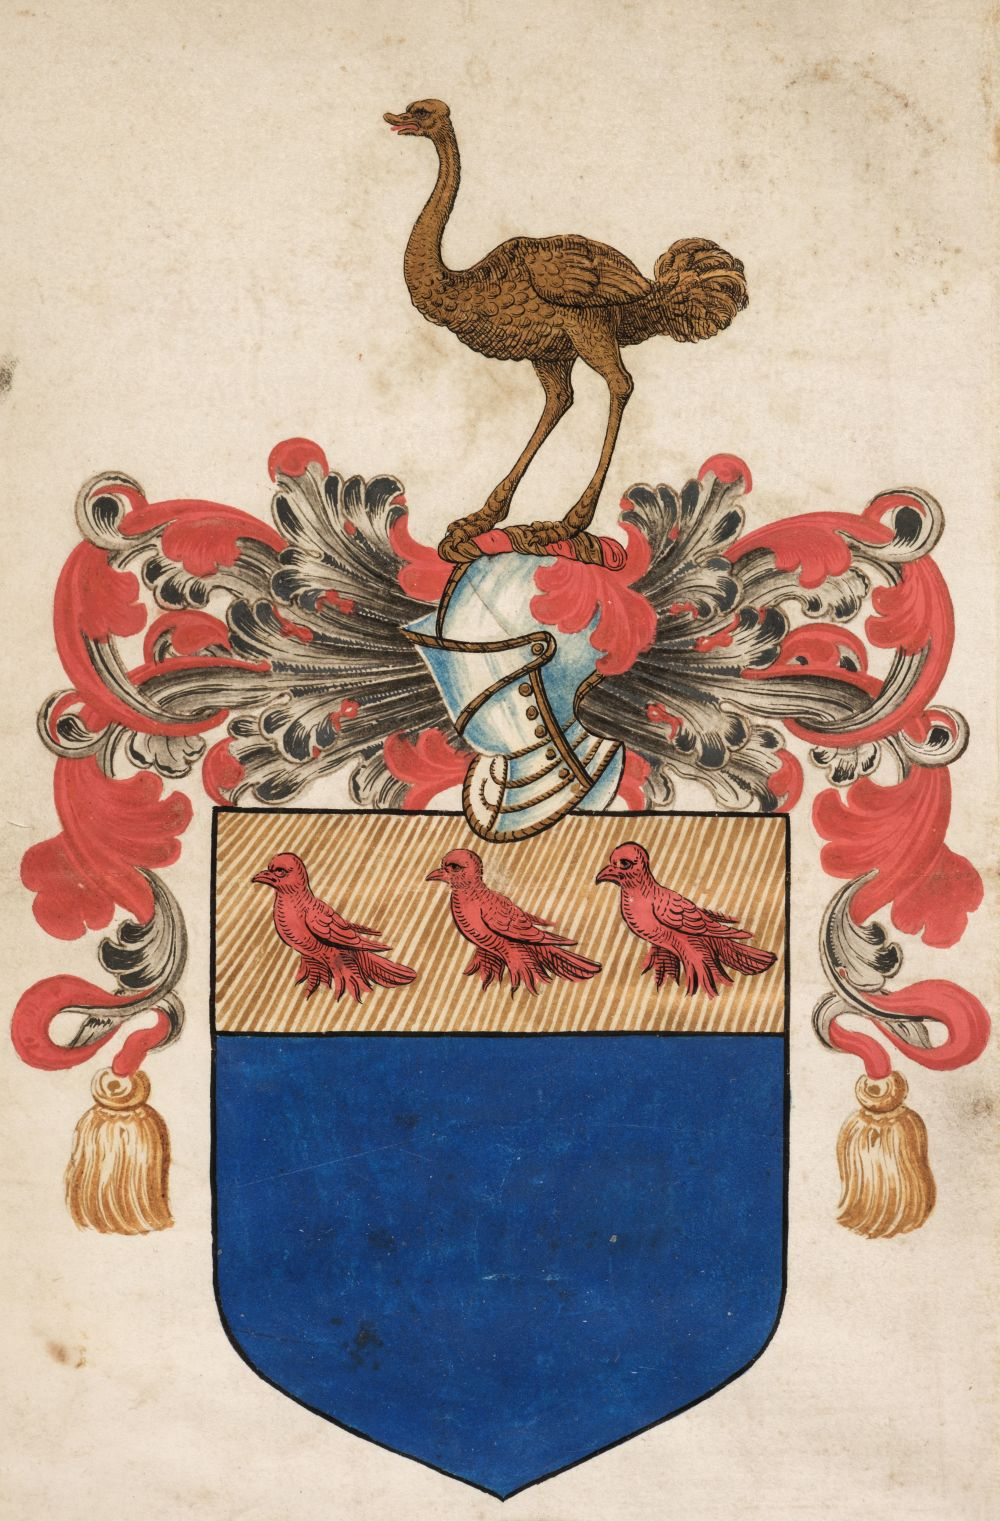 * Wray (Sir Christopher, c. 1522-1592). Patent of Arms by Robert Cooke, 1586 - Image 2 of 2